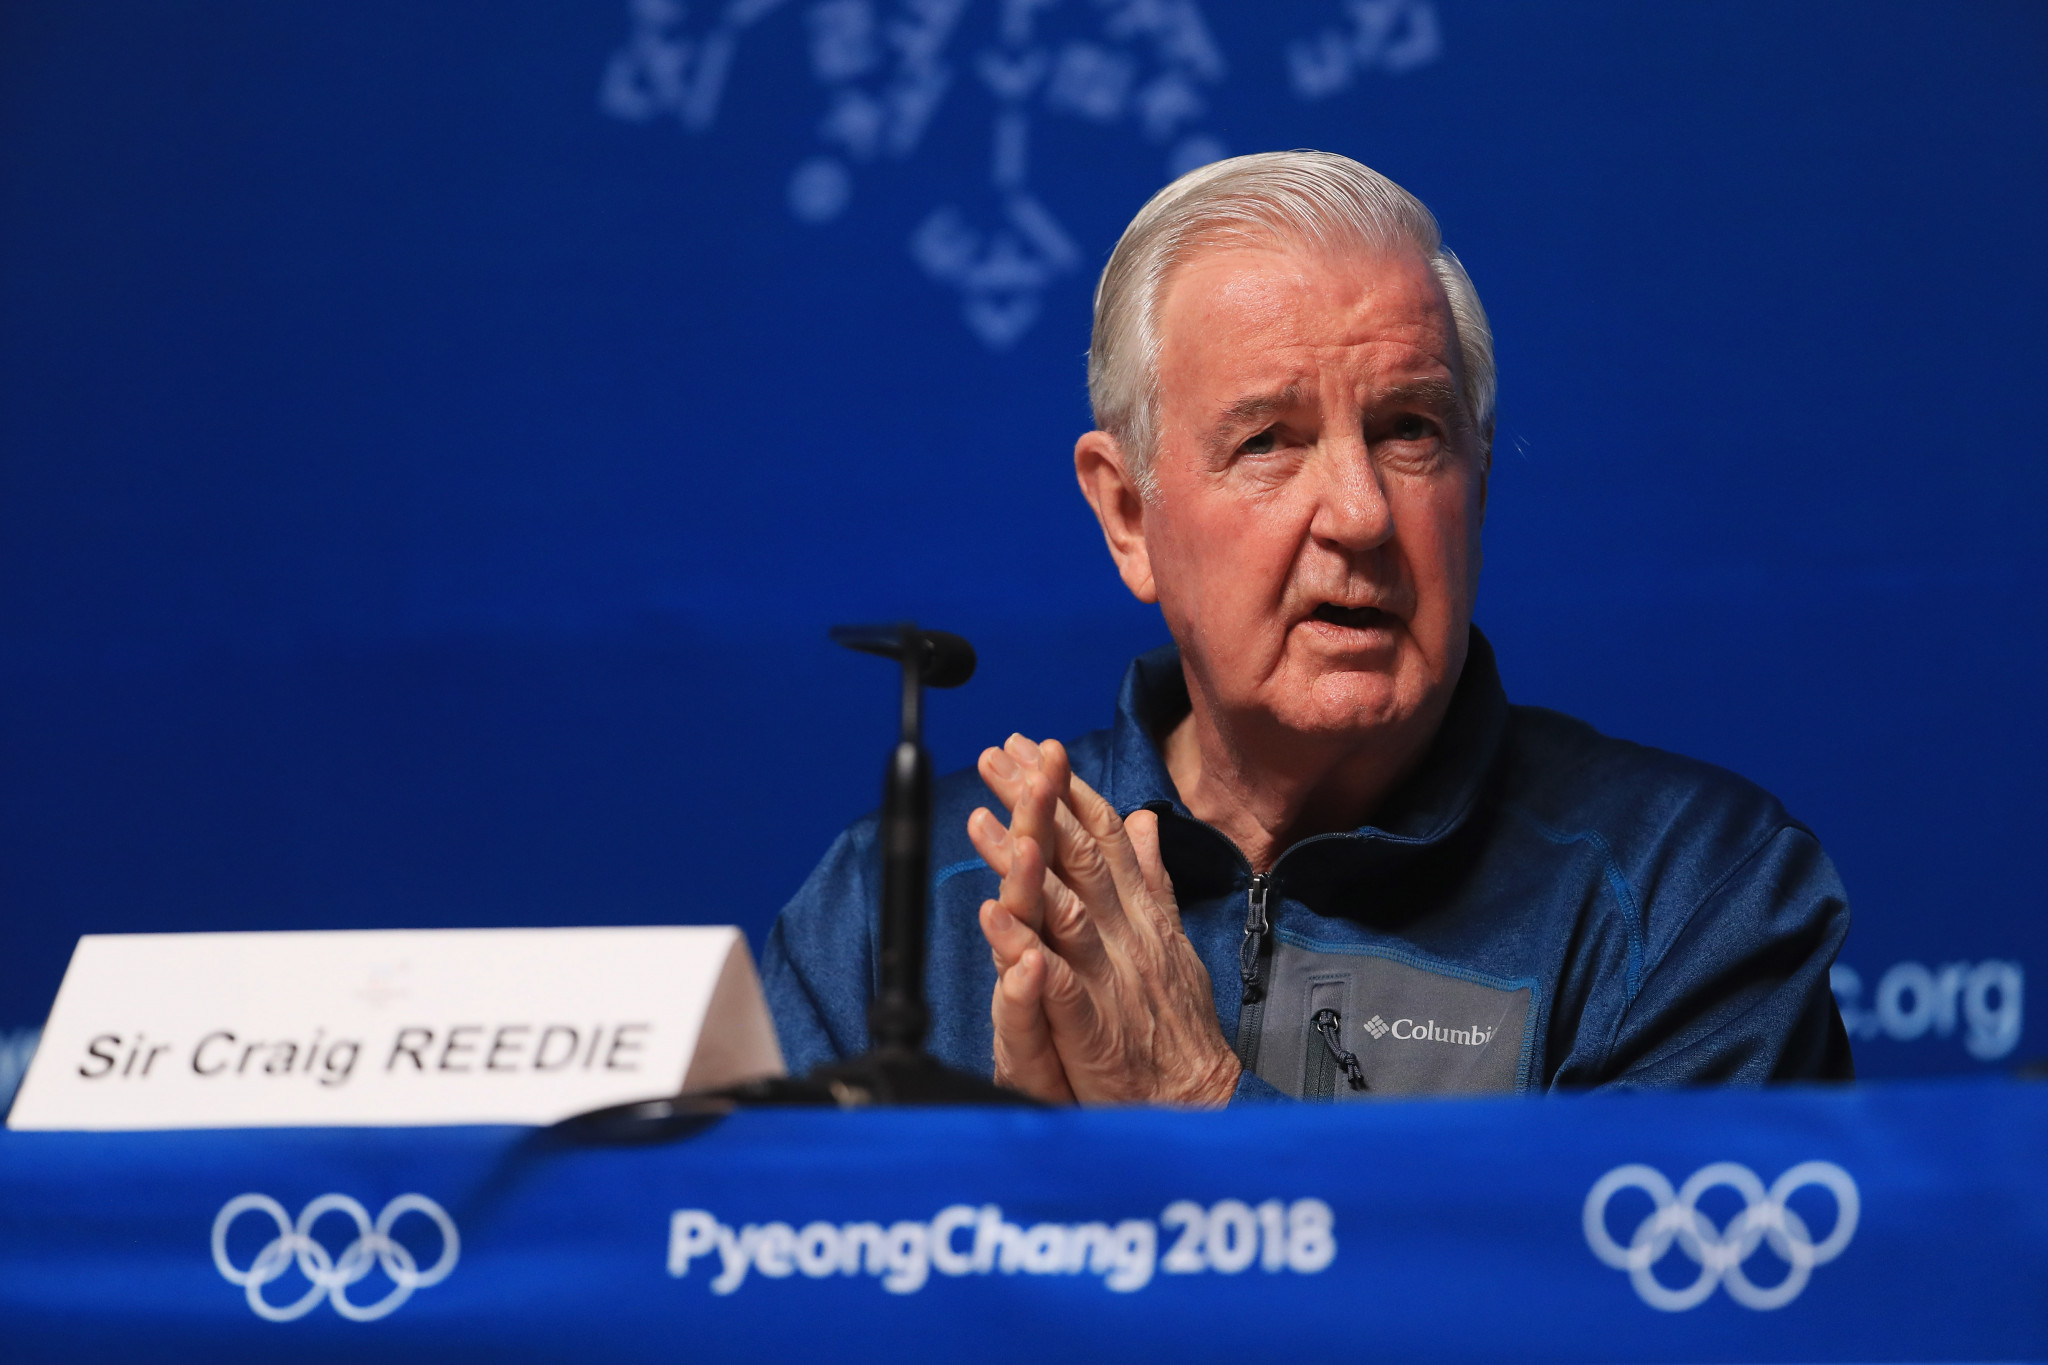 WADA President Sir Craig Reedie said every effort had been made to ensure a level playing field at Pyeongchang 2018 ©Getty Images